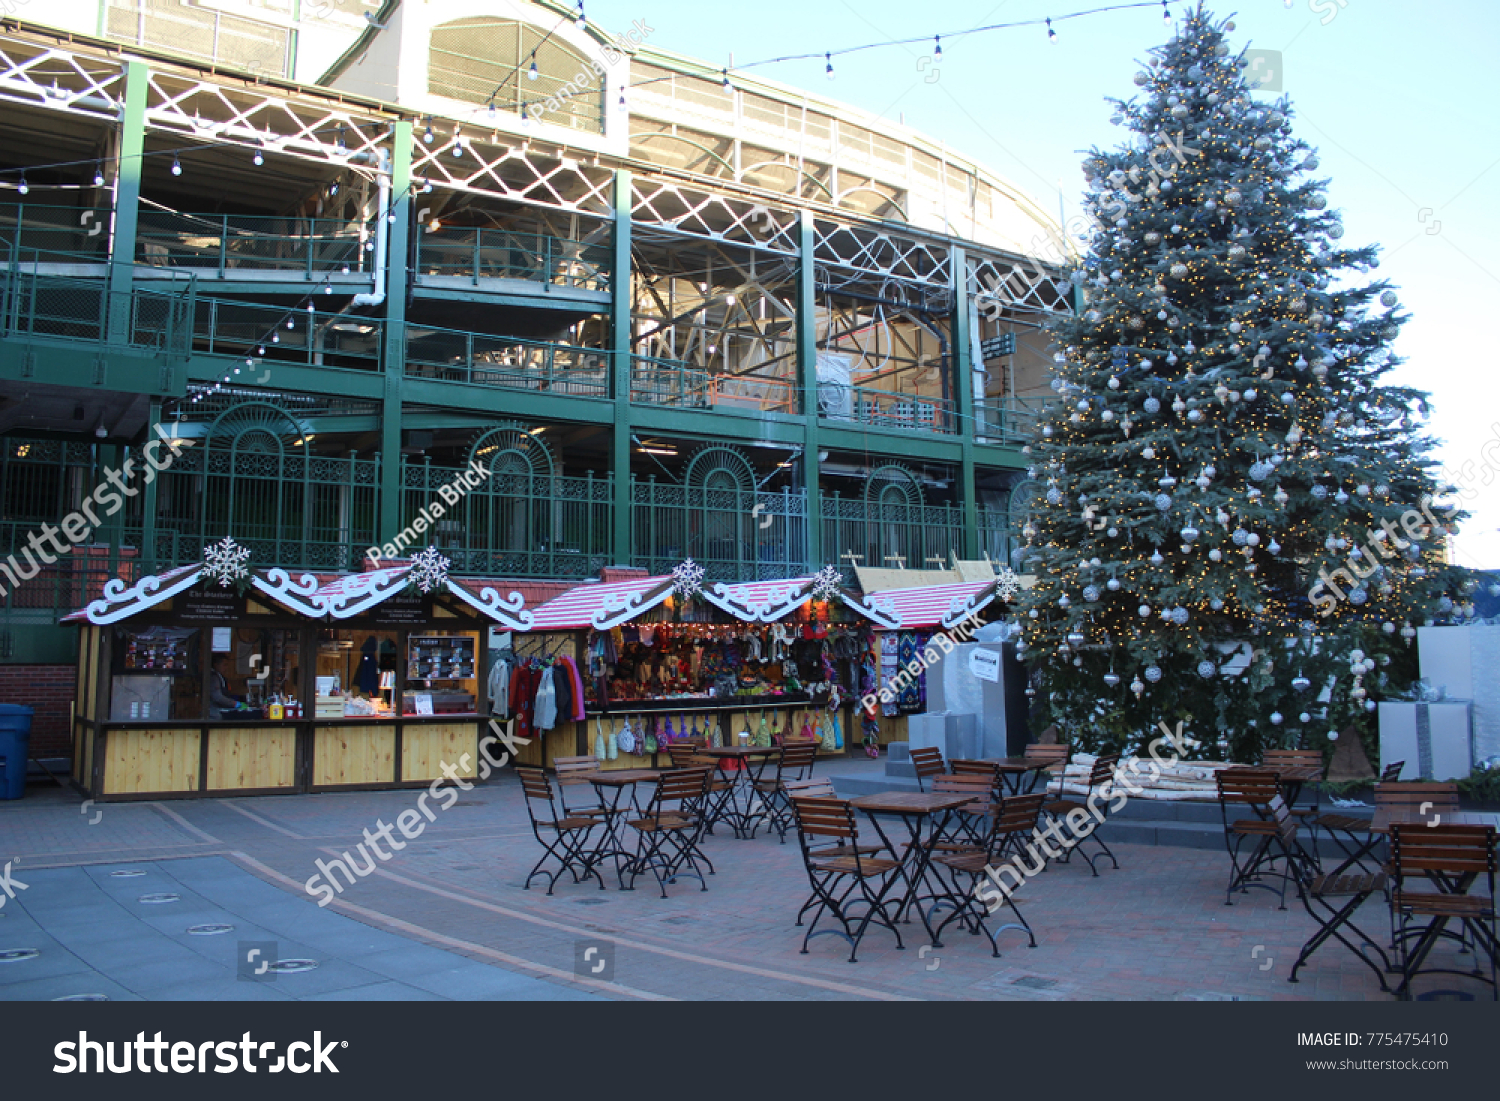 chicago december 2017 holiday decorations christmas market at wrigley field chicago cubs park - Chicago Christmas Decorations